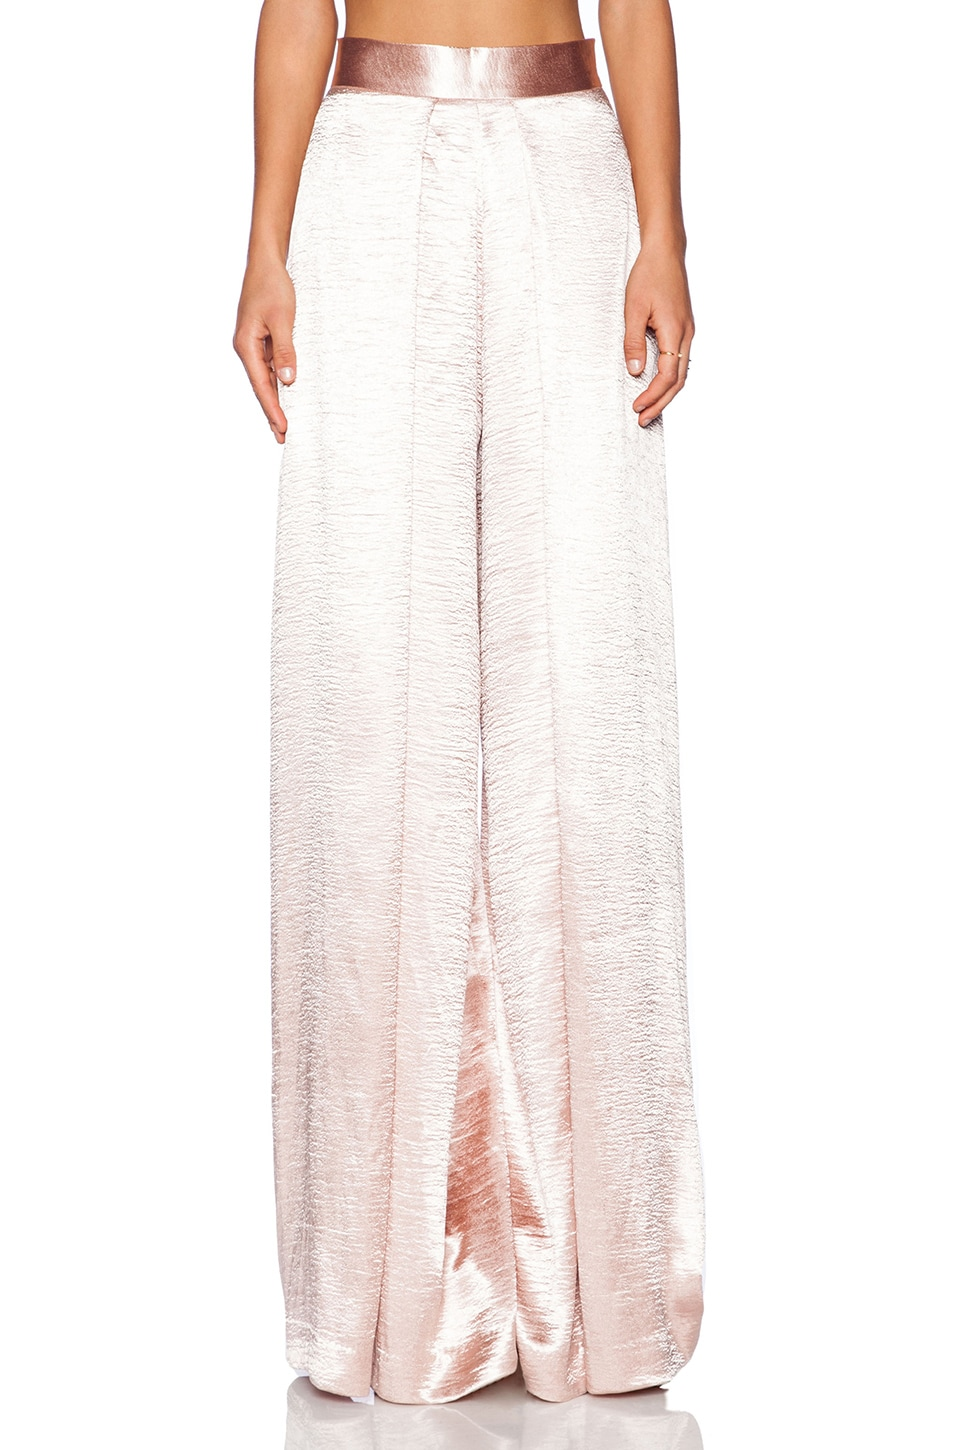 SOLACE London Stellis Trousers in Metallic Pink